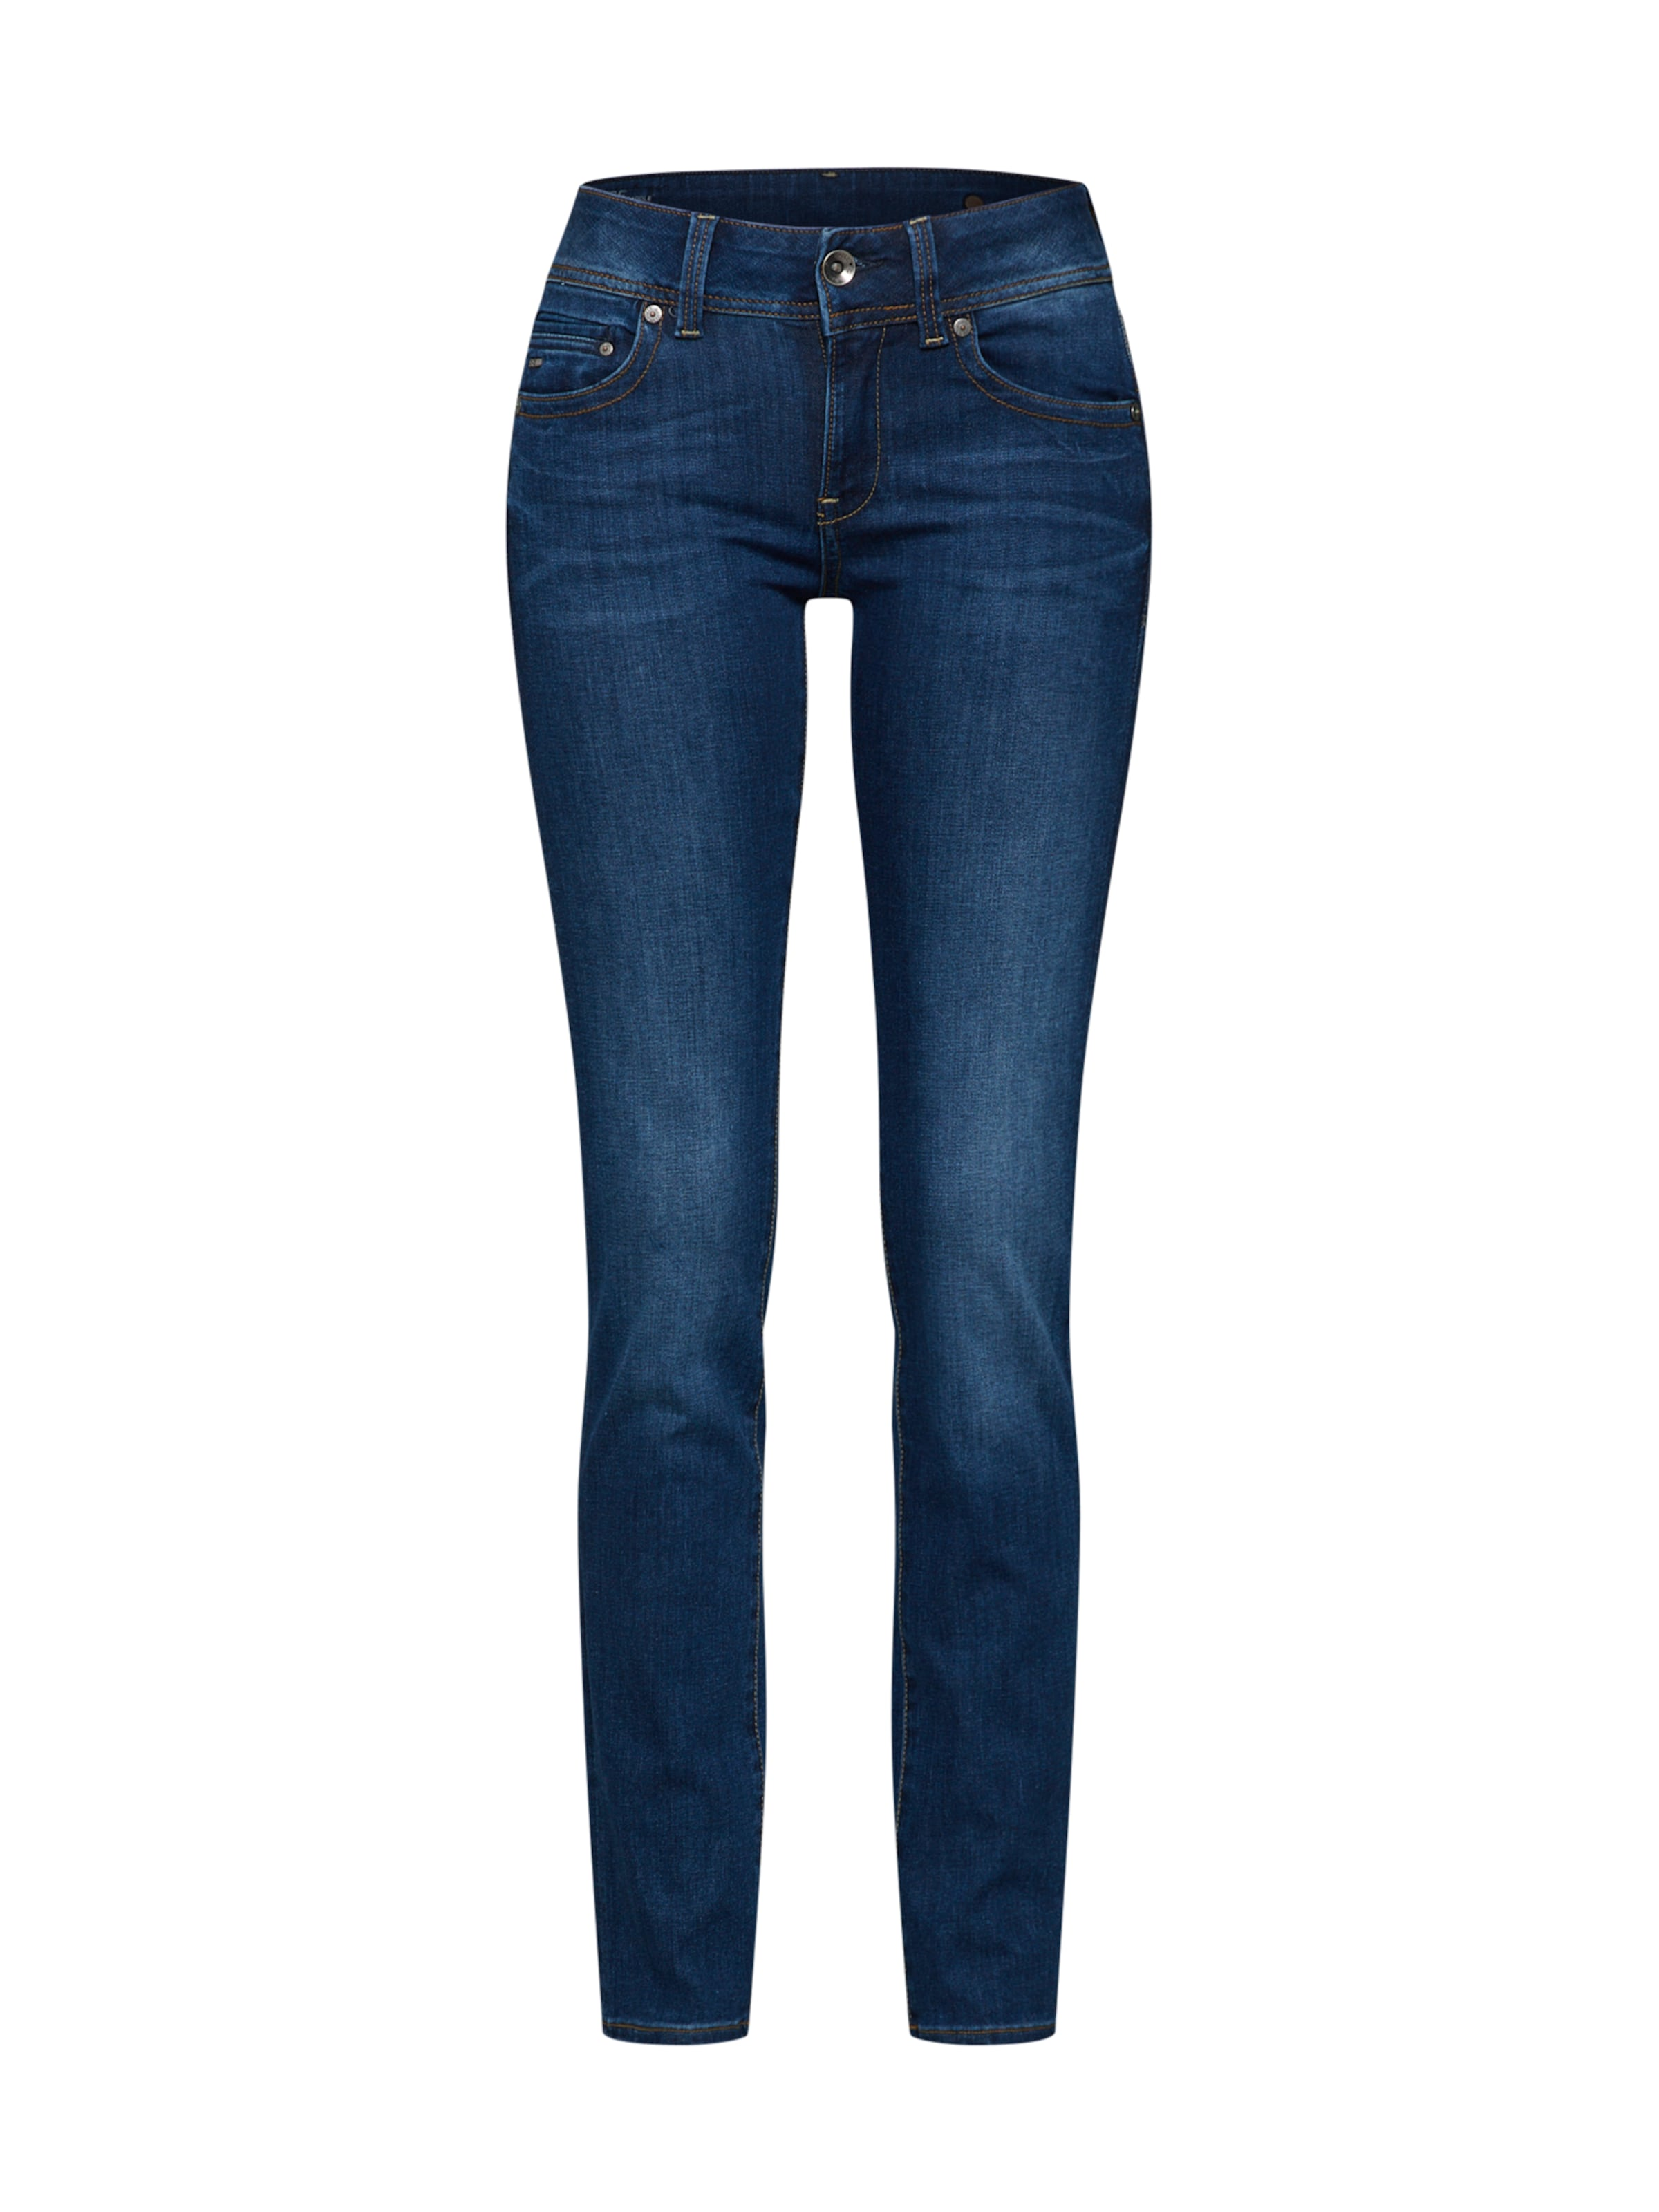 In Raw Jeans star 'midge Denim Saddle' G Blue j3RL54A